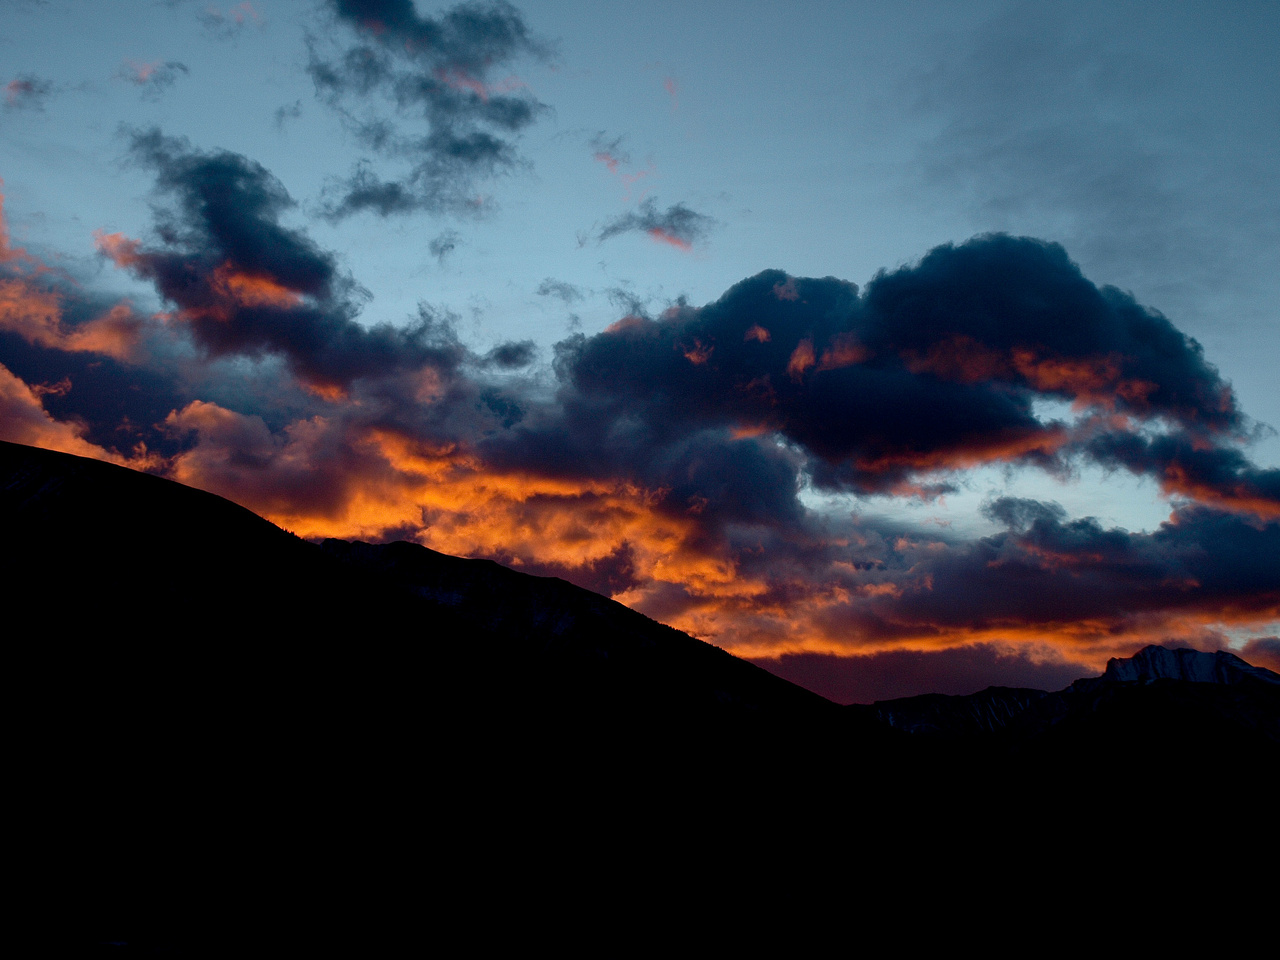 A fiery sunrise along hwy 40. Fisher Peak is just visible on the right hand side of the photo.